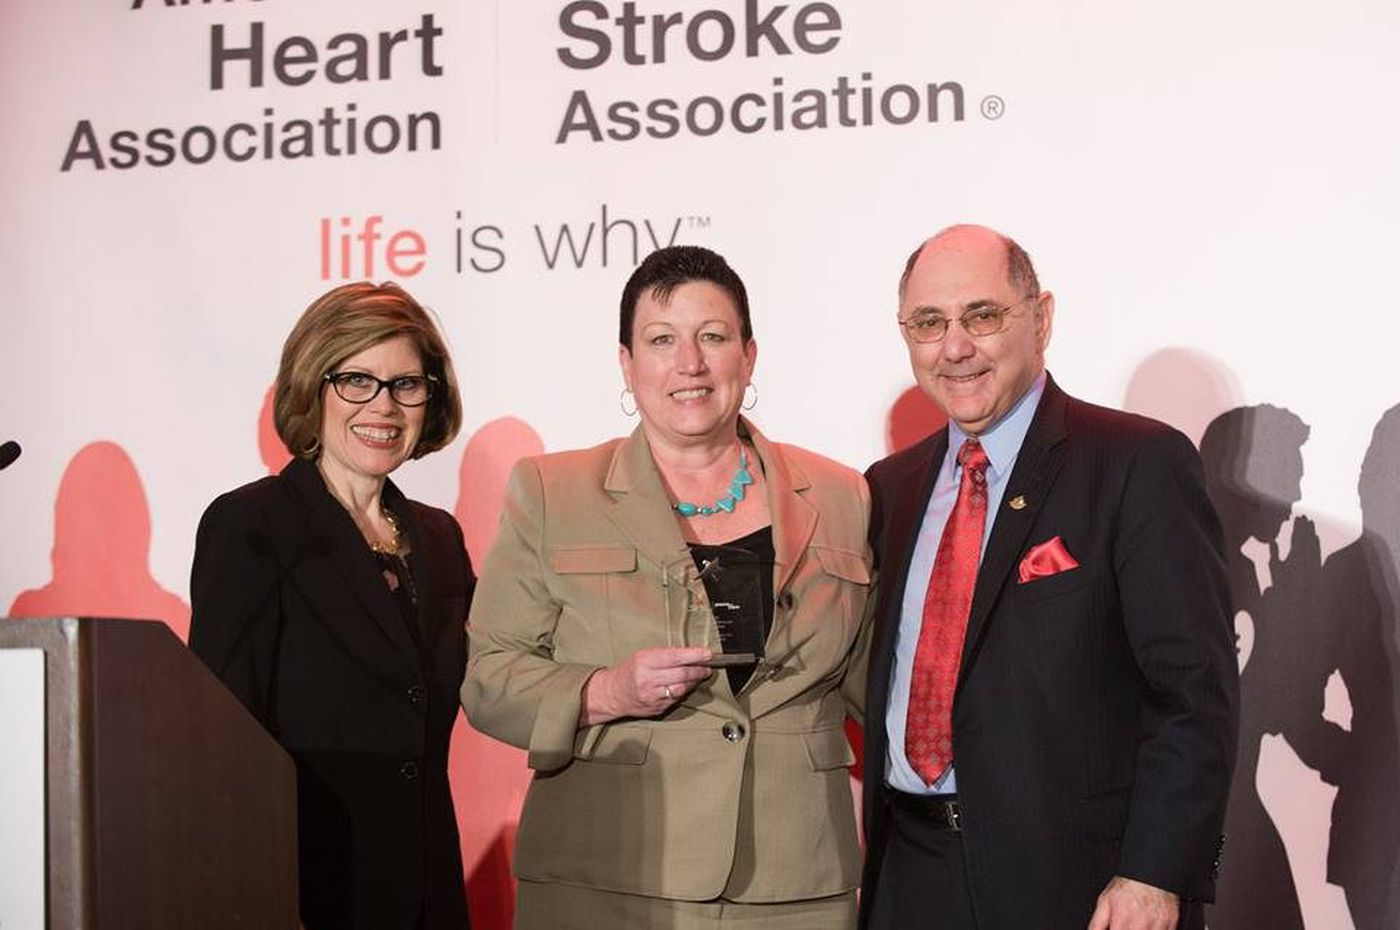 When her mother had a stroke, this Bensalem nurse dedicated her life to heart health